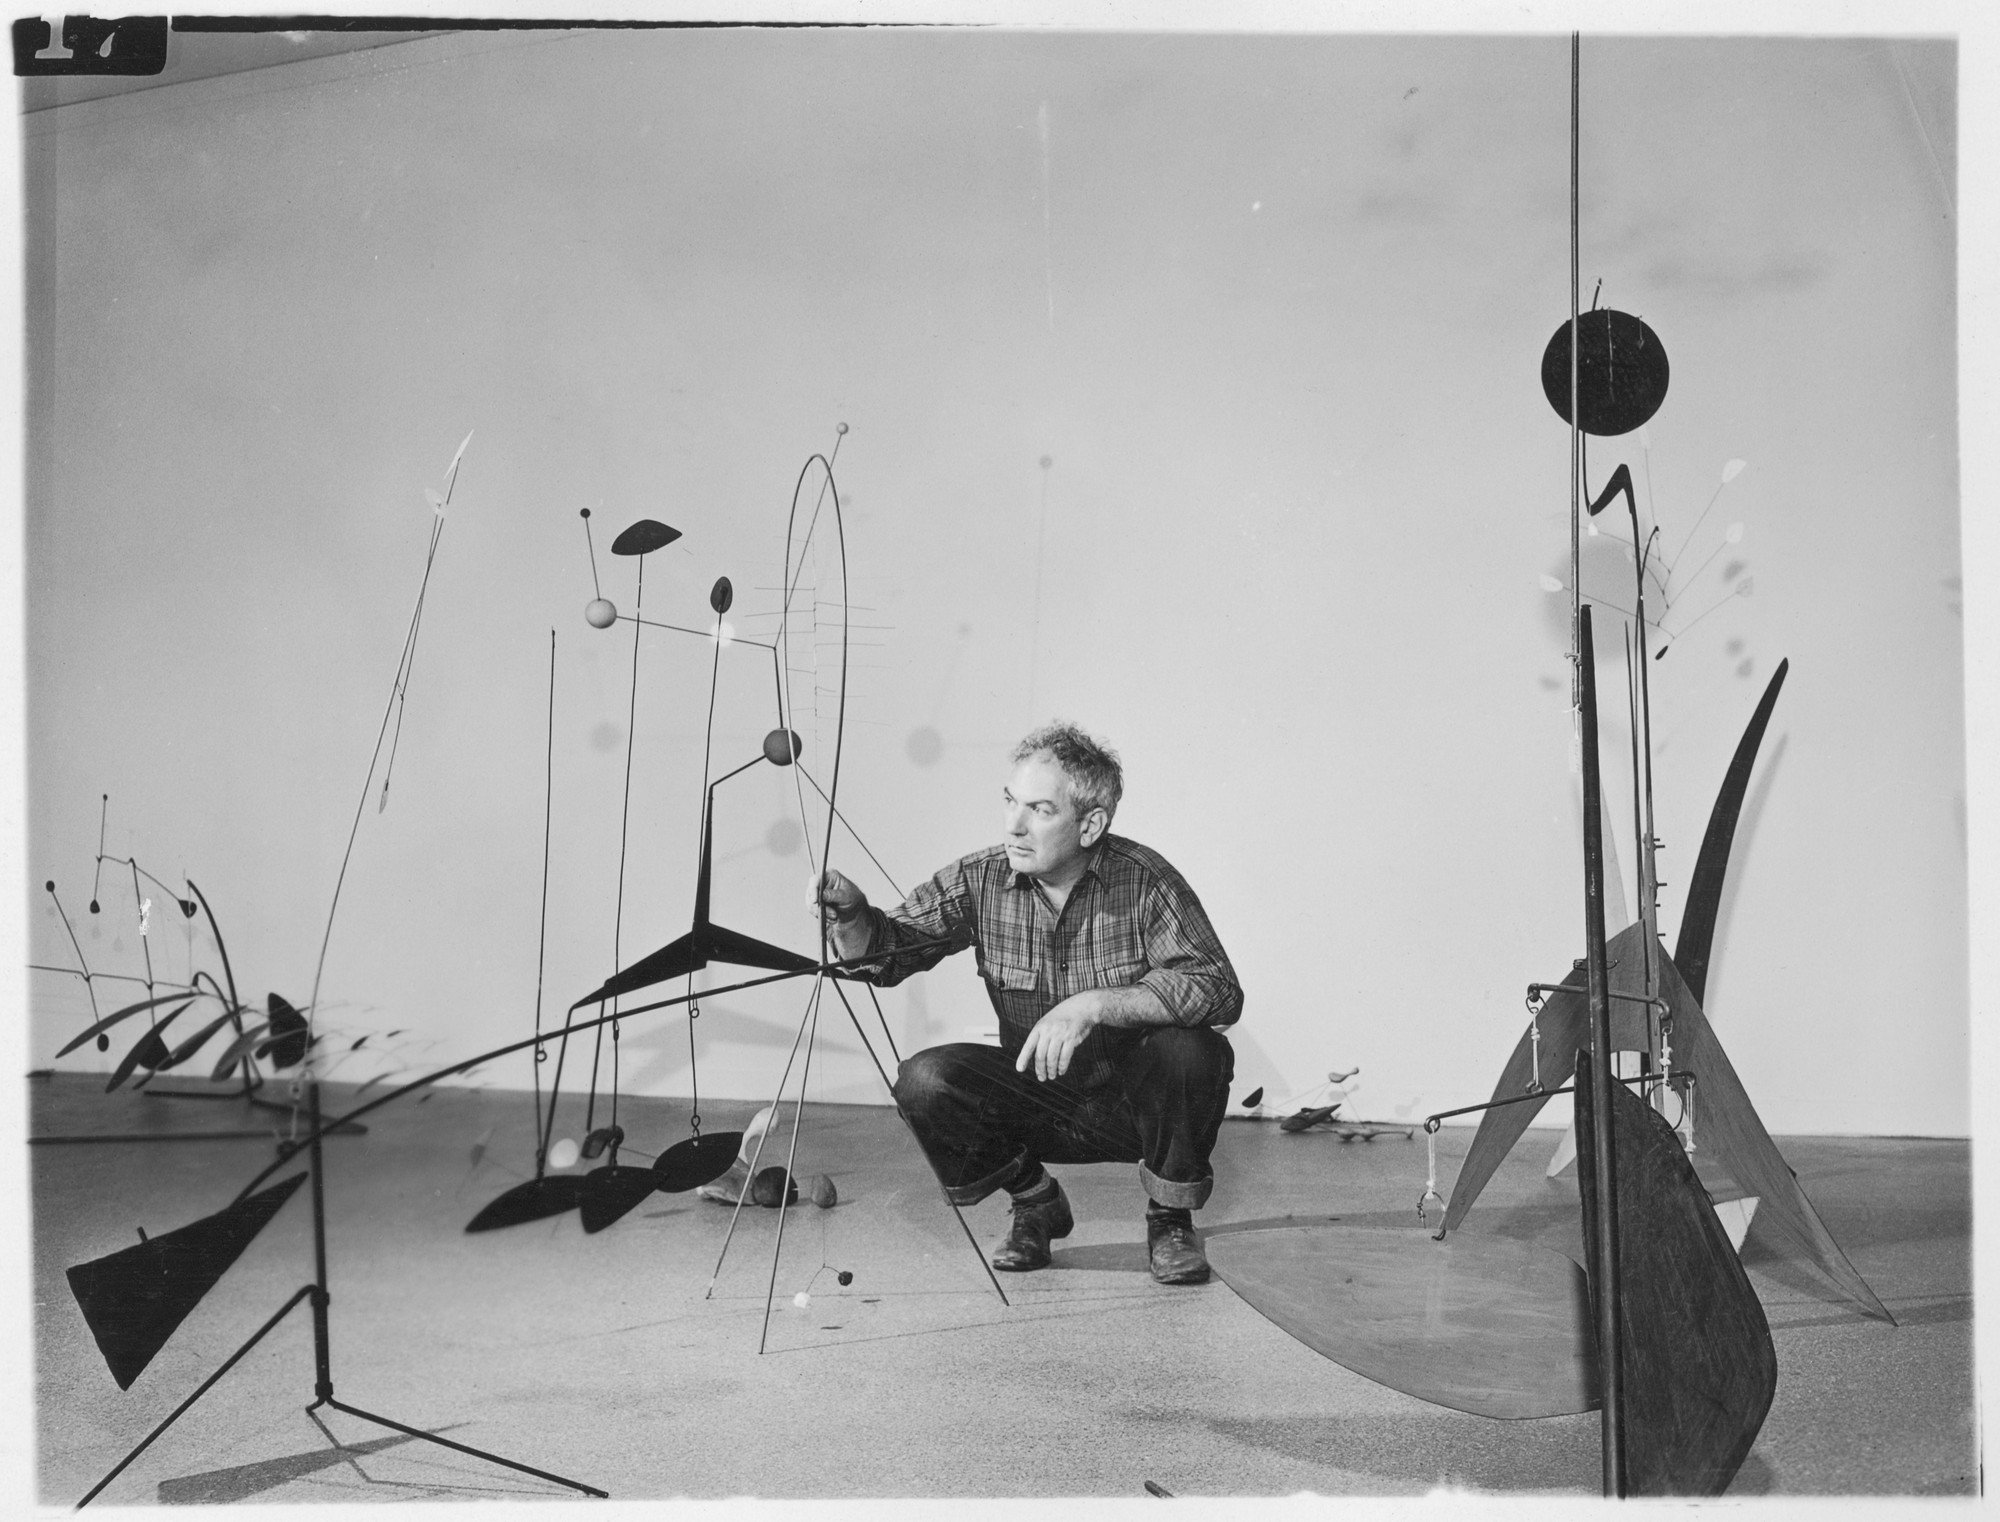 """Alexander Calder, American Sculptor and Constructivist, arranges a few of his mobiles in the big exhibition of his work which opens at the Museum of Modern Art, 11 West 53 Street, on Wednesday, September 29. Nearly 100 mobiles, stabiles, constellations and pieces of jewelry will be shown. Mr. Calder was born near Philadelphia and lives in Roxbury, Connecticut, and New York City."" September 29, 1943–January 16, 1944. Photographic Archive. The Museum of Modern Art Archives, New York. IN242.2"